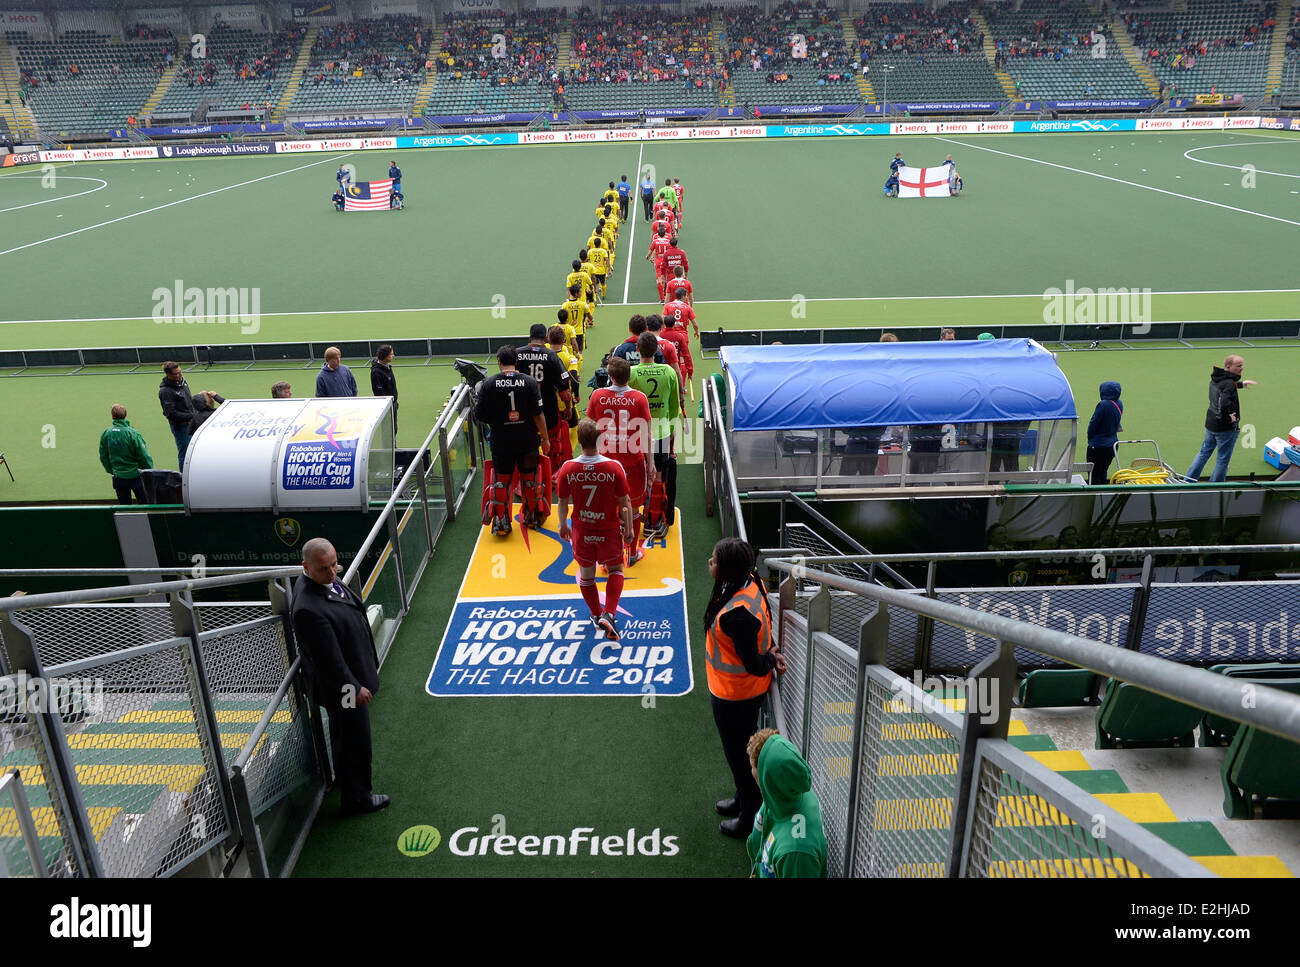 England's players line the tunnel before their match against Malaysia during their pool A game at the Rabobank - Stock Image